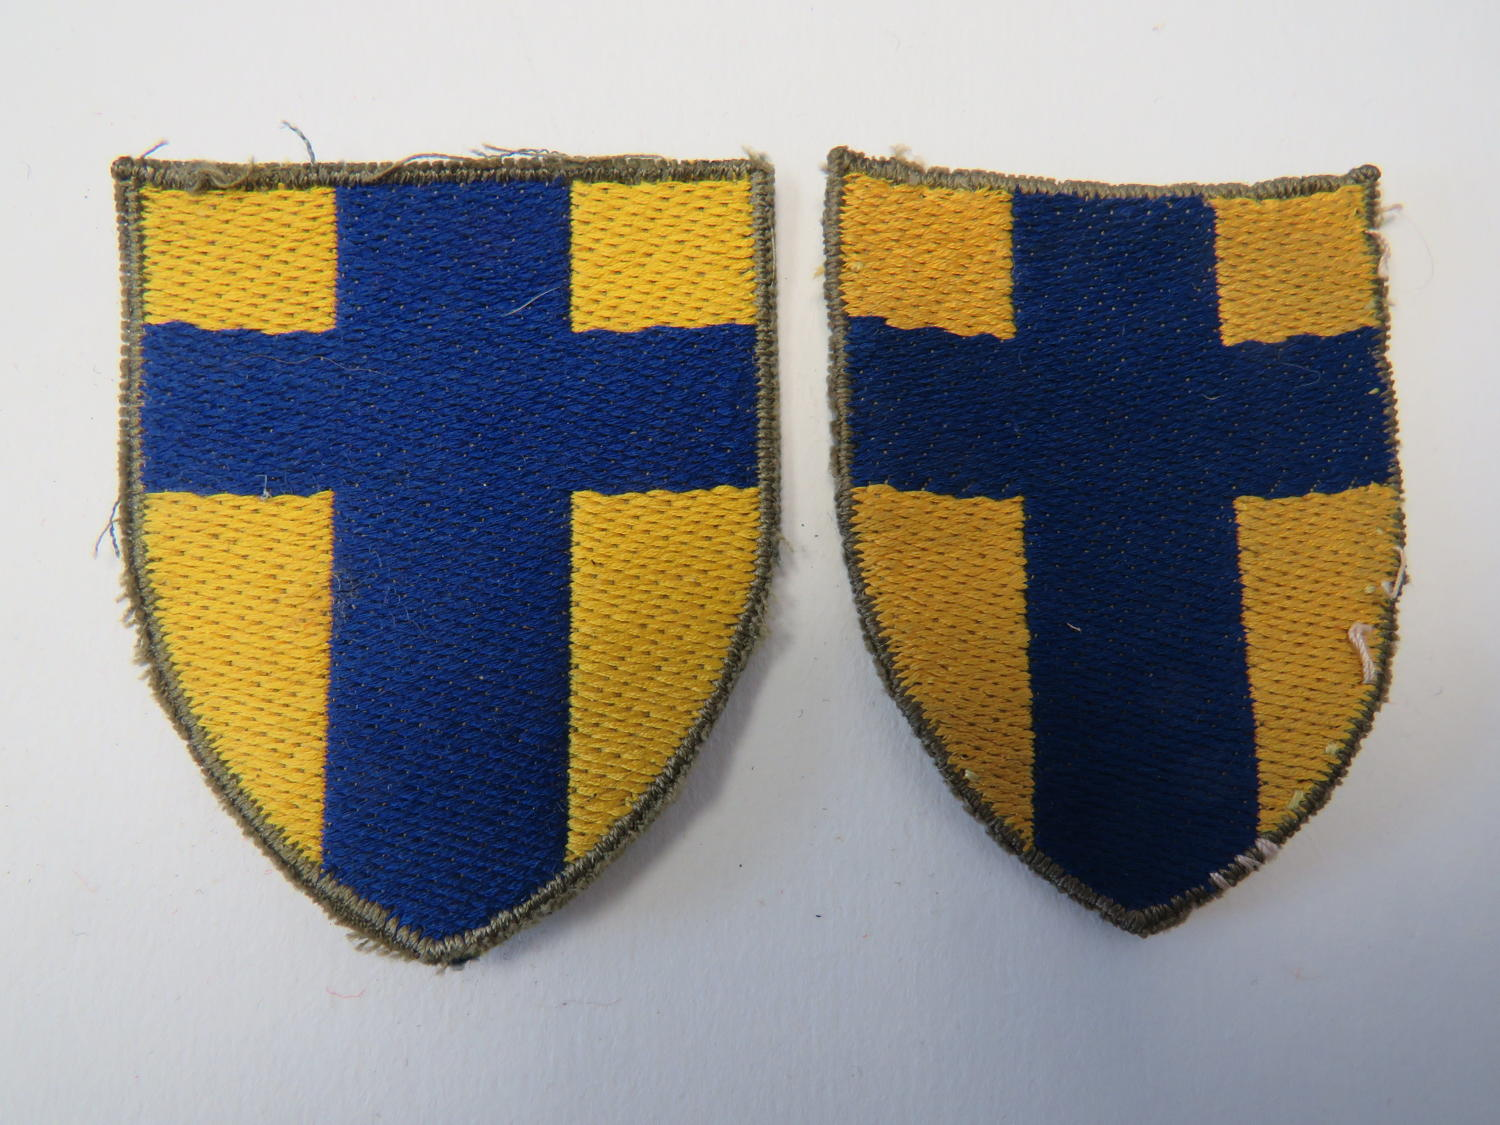 Pair of British Troops Low Countries Formation Badges